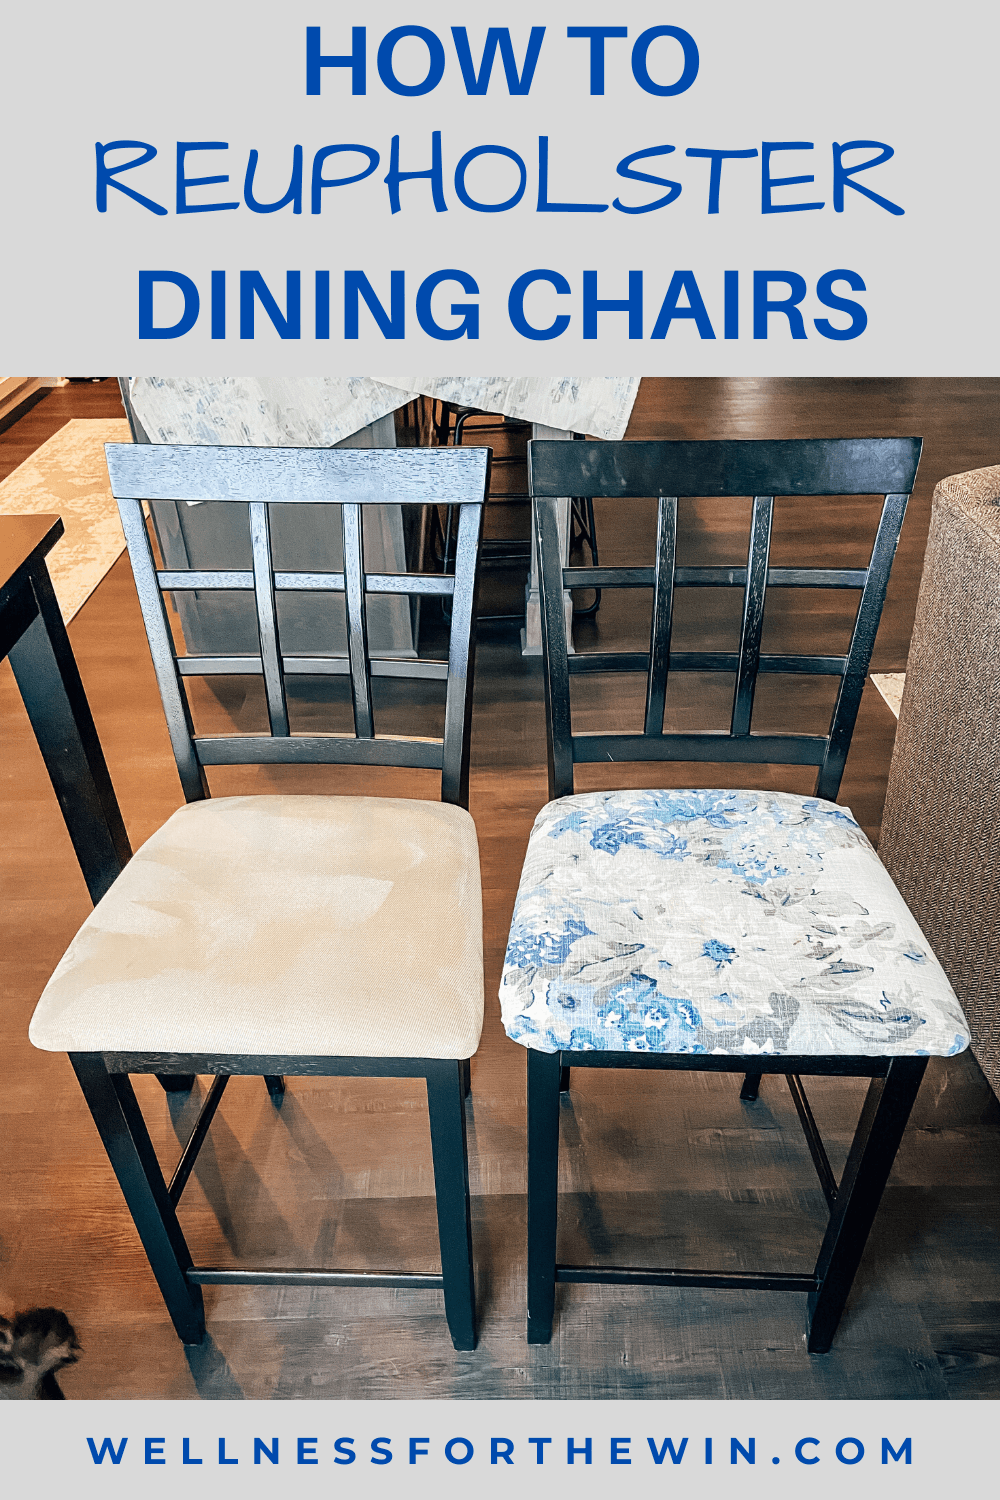 How To Reupholster Dining Chairs Wellness For The Win